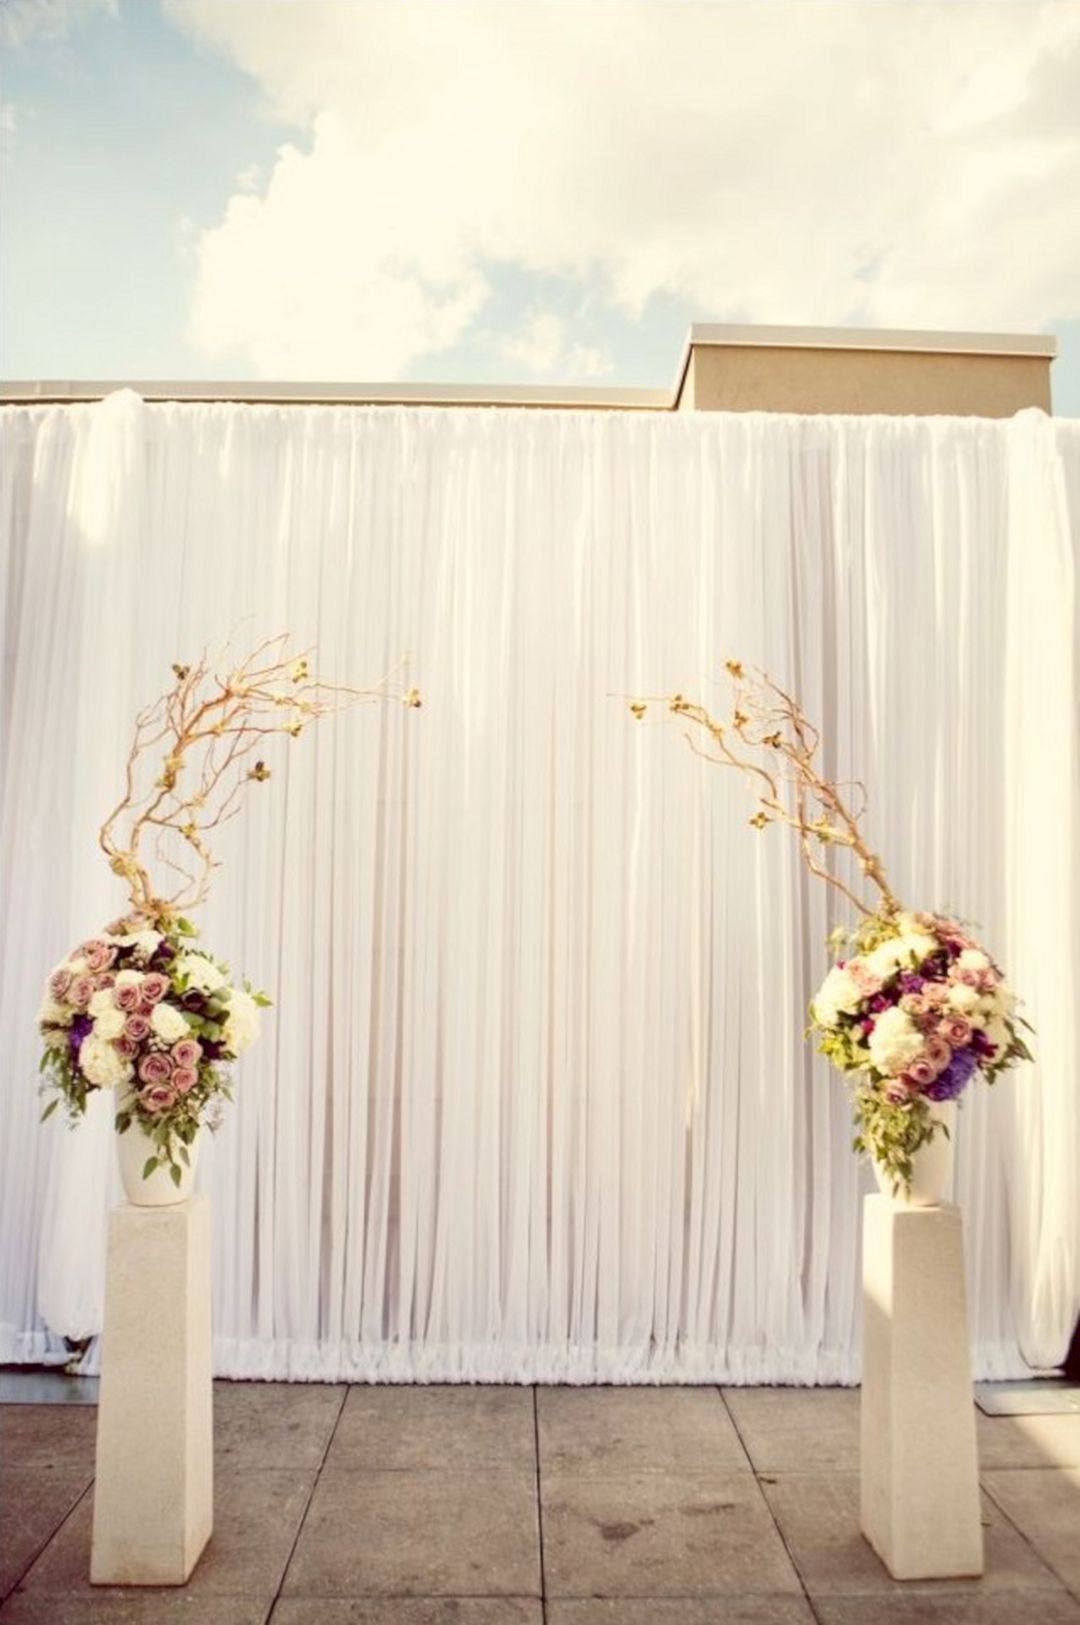 30 Simple Wedding Backdrop Ideas For Your Wedding Ceremony ...